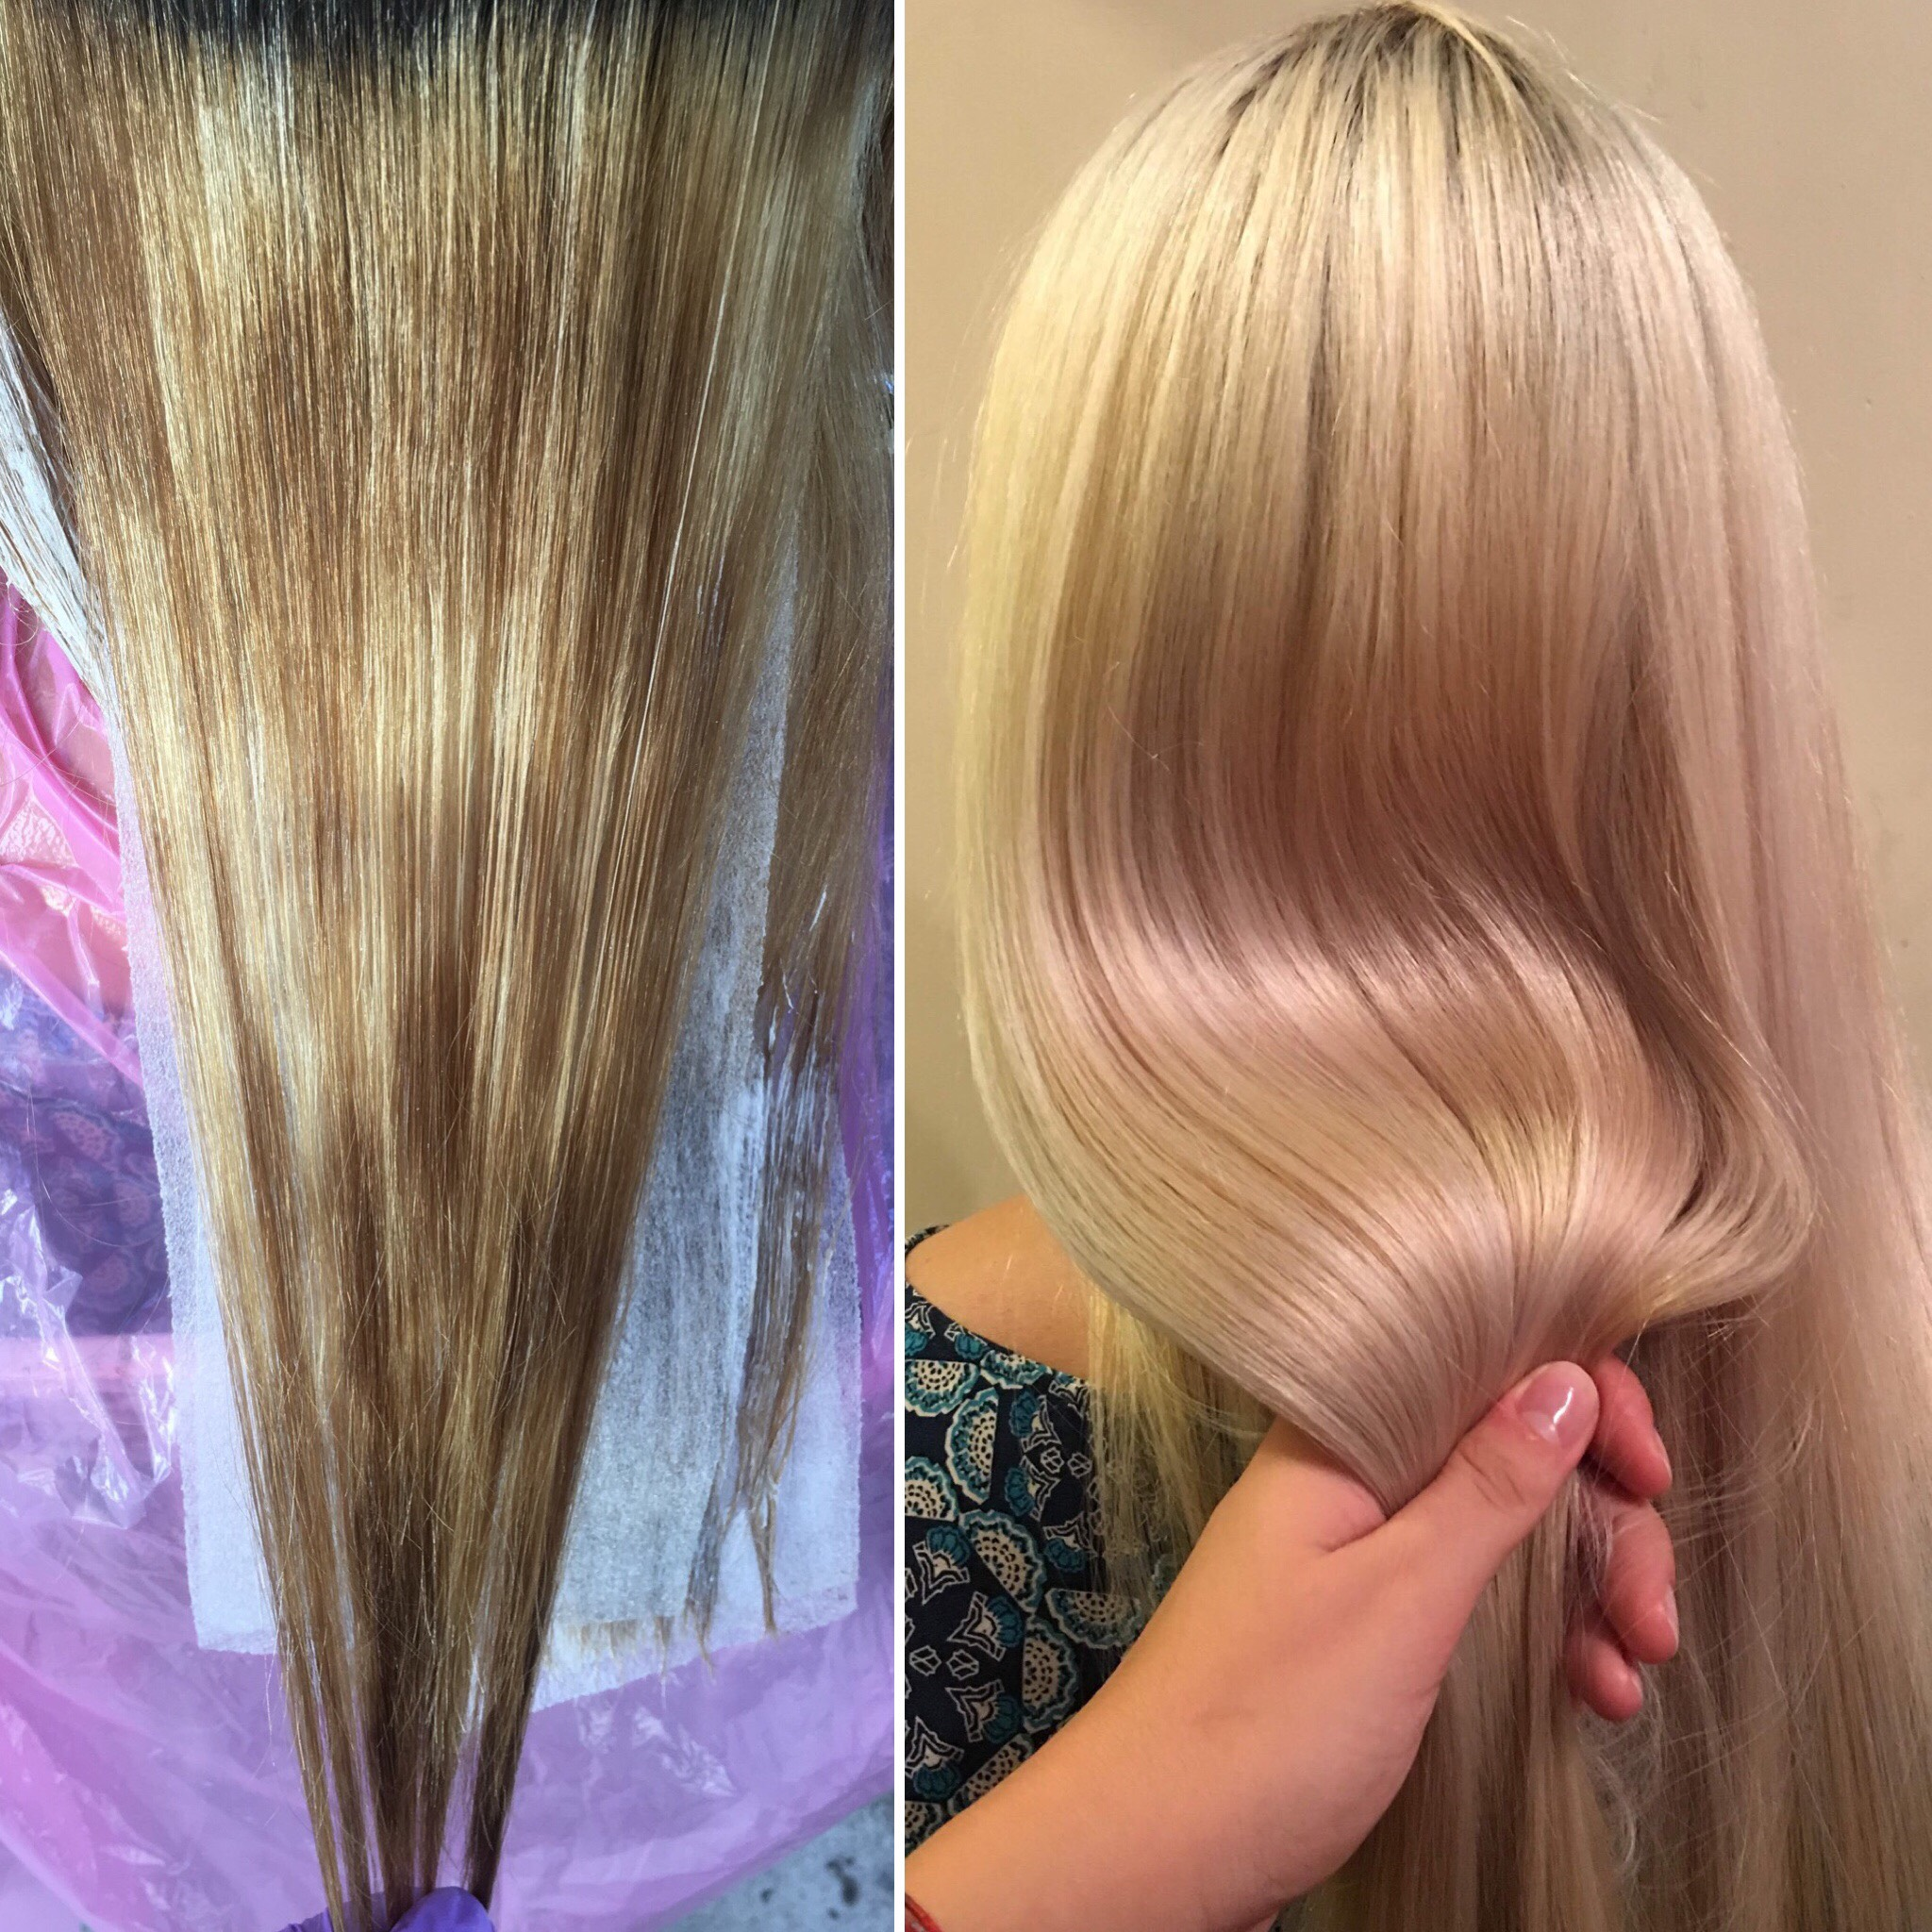 Hair color makeover by Michelle Maspes.